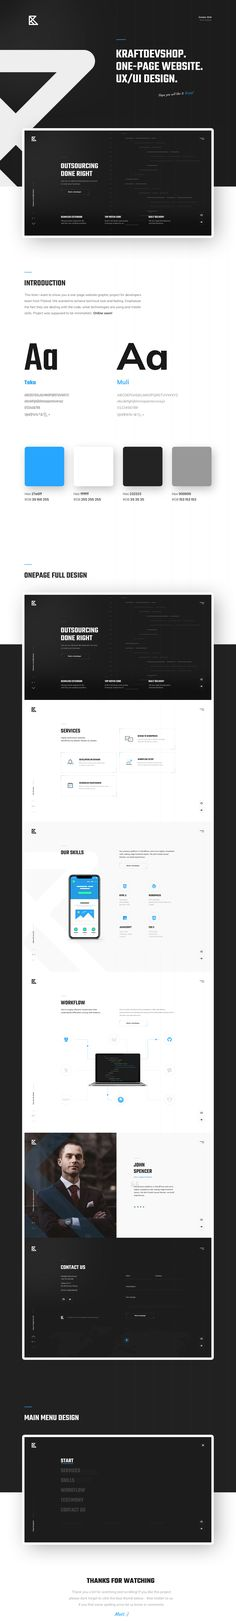 One-page Website Design. on Behance Desing Inspiration, Landing Page Inspiration, One Page Website, Graphic Projects, Website Themes, First Page, Page Design, Design Web, Banner Design